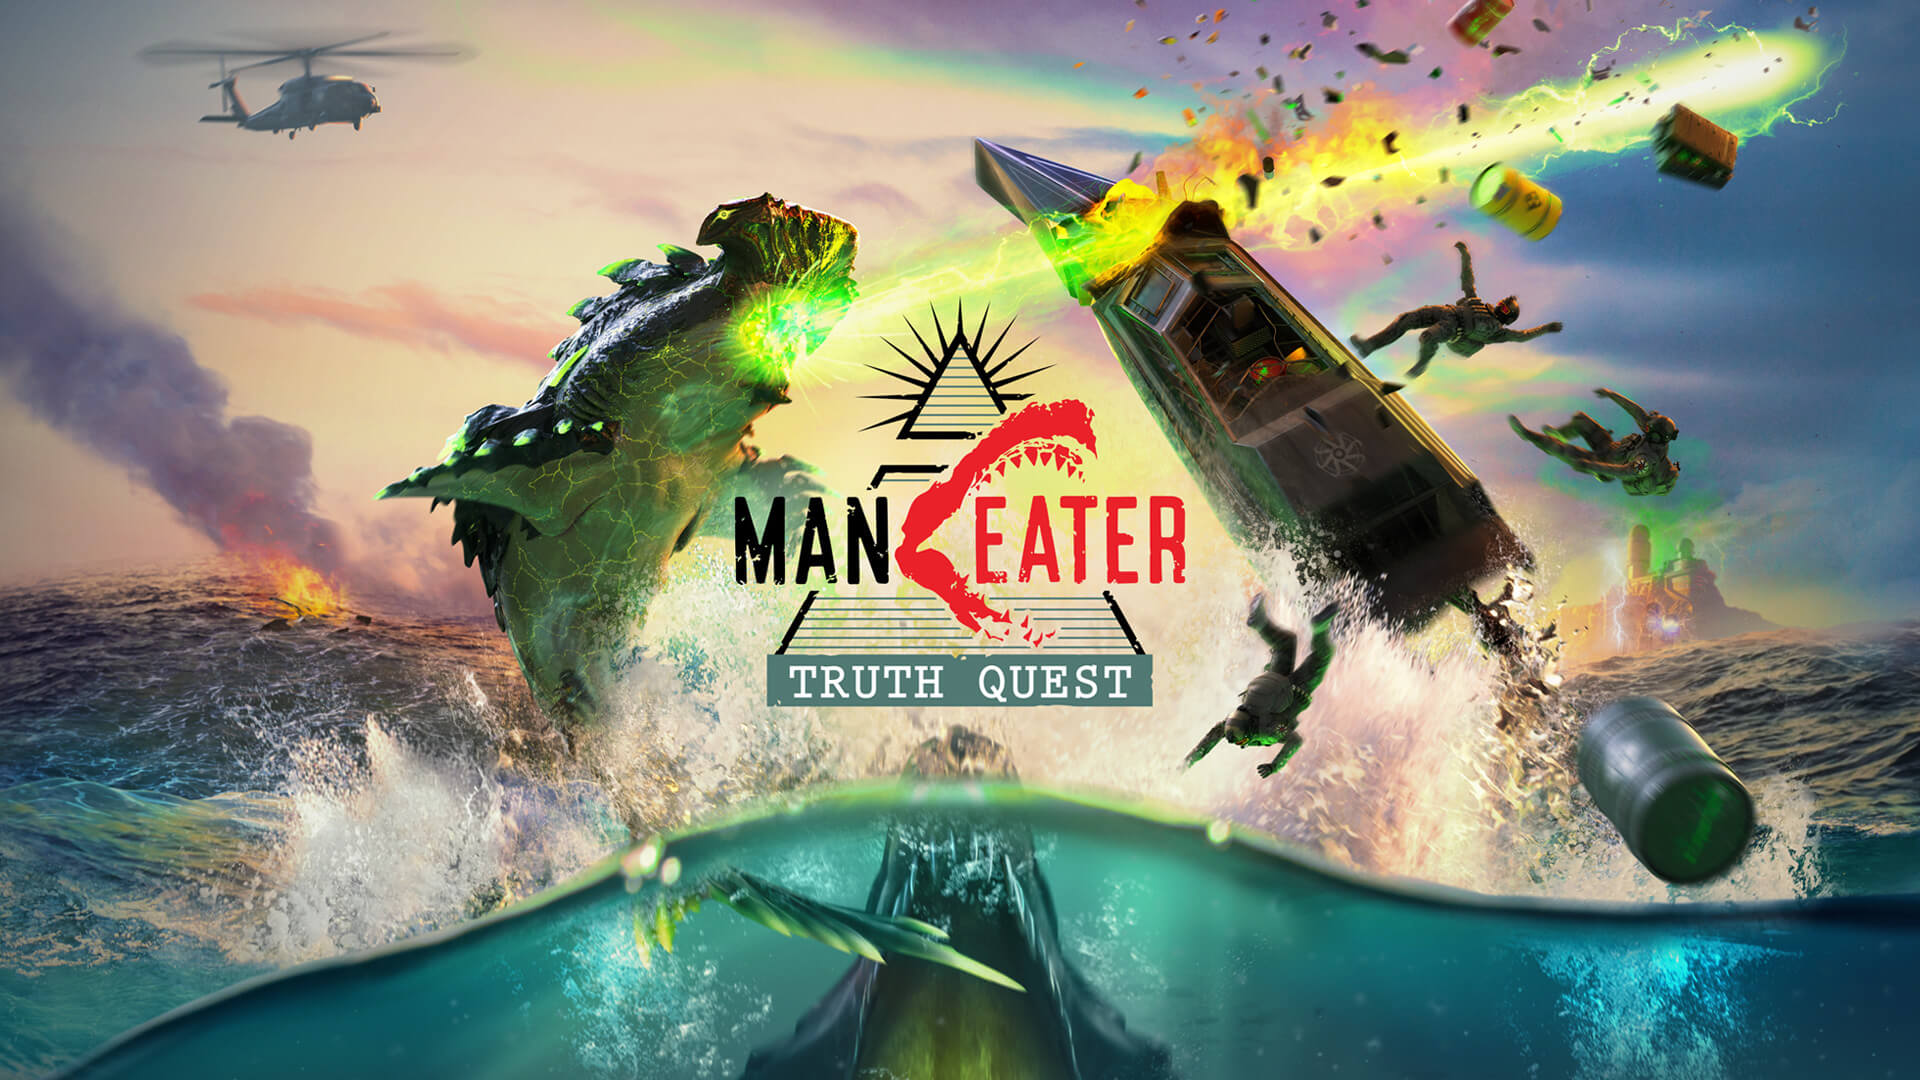 Maneater Truth Quest DLC Image